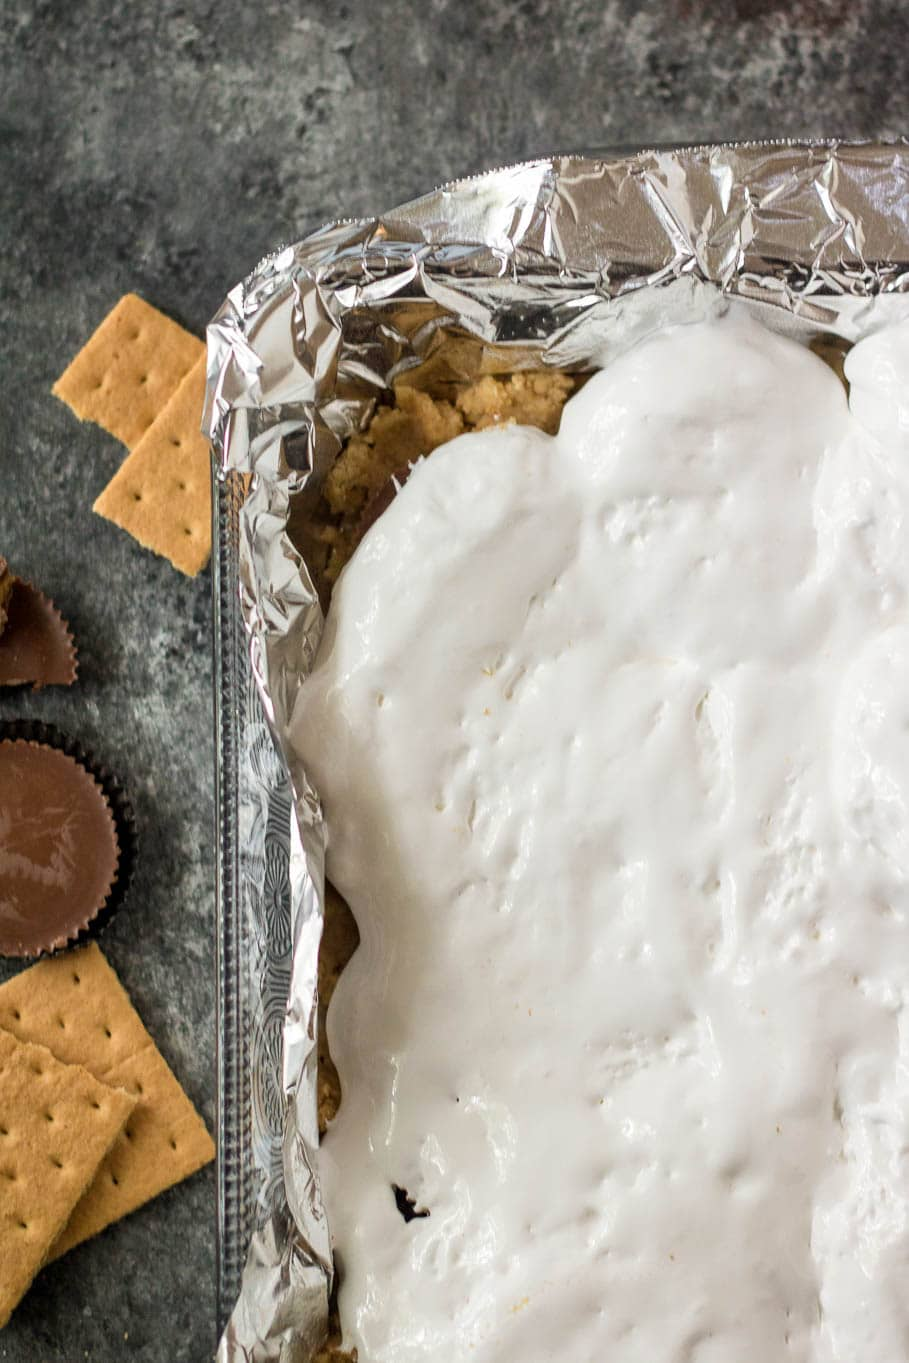 Marshmallow fluff in a baking dish with tin foil